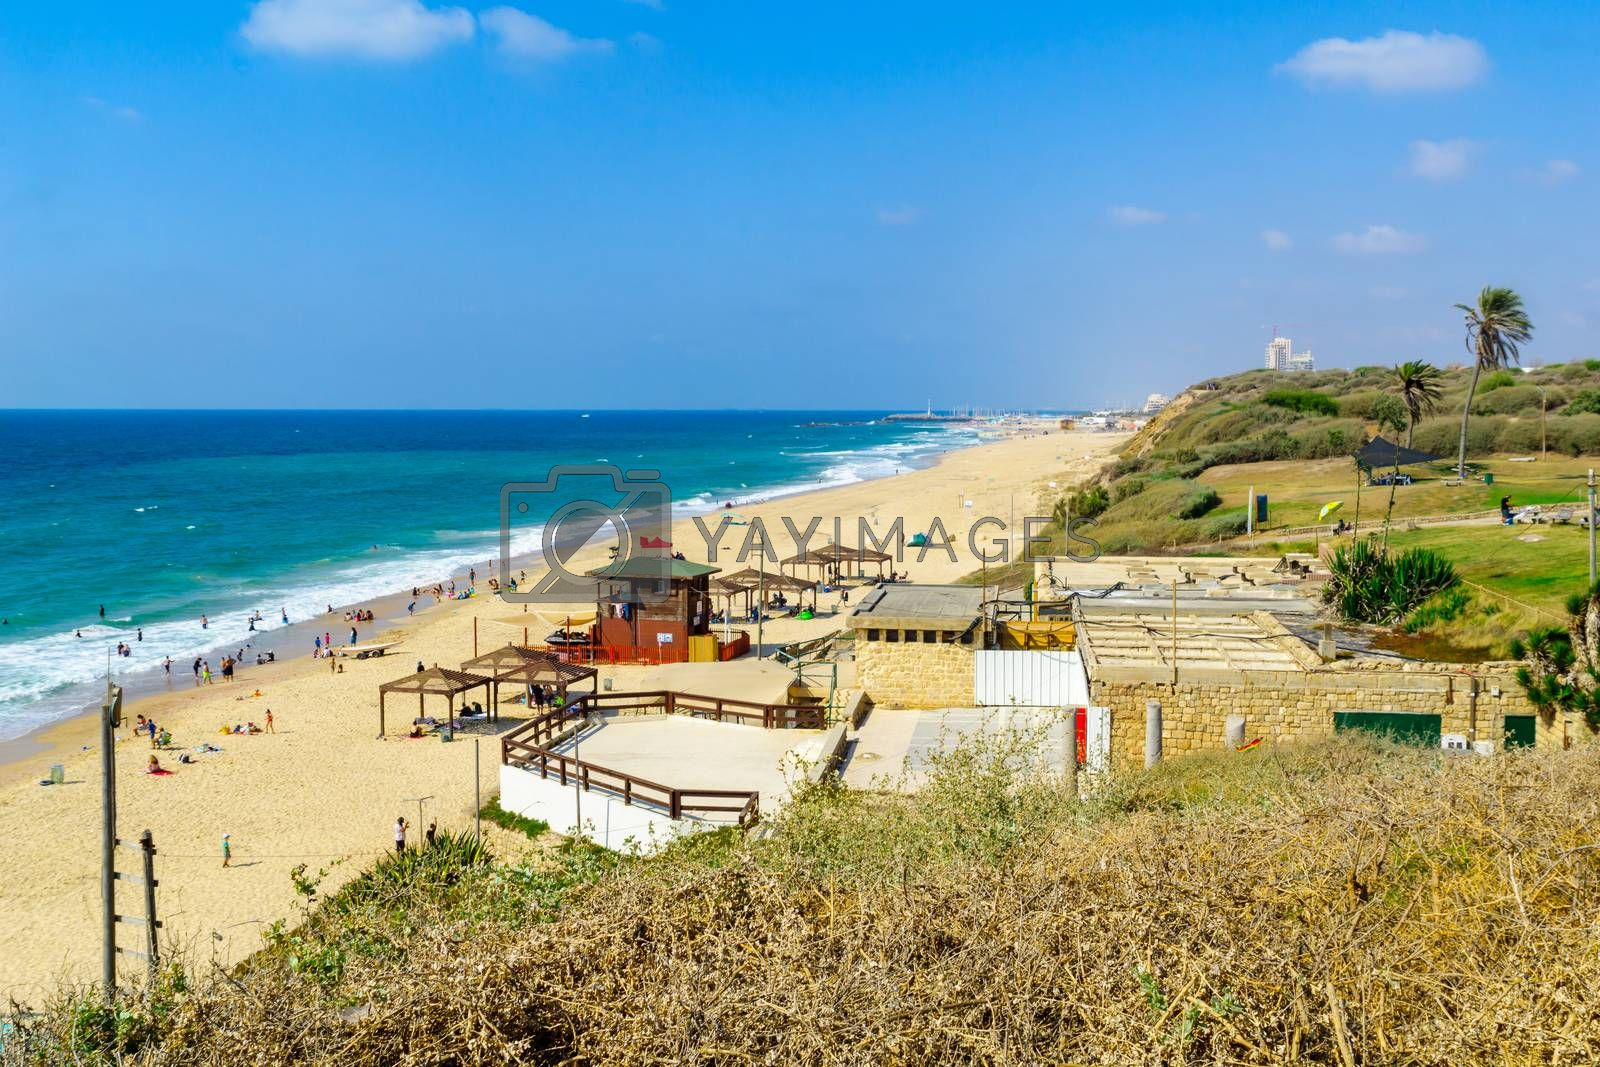 Ashkelon, Israel - August 12, 2020: View of the Mediterranean beach of Ashkelon National Park, with visitors. Southern Israel